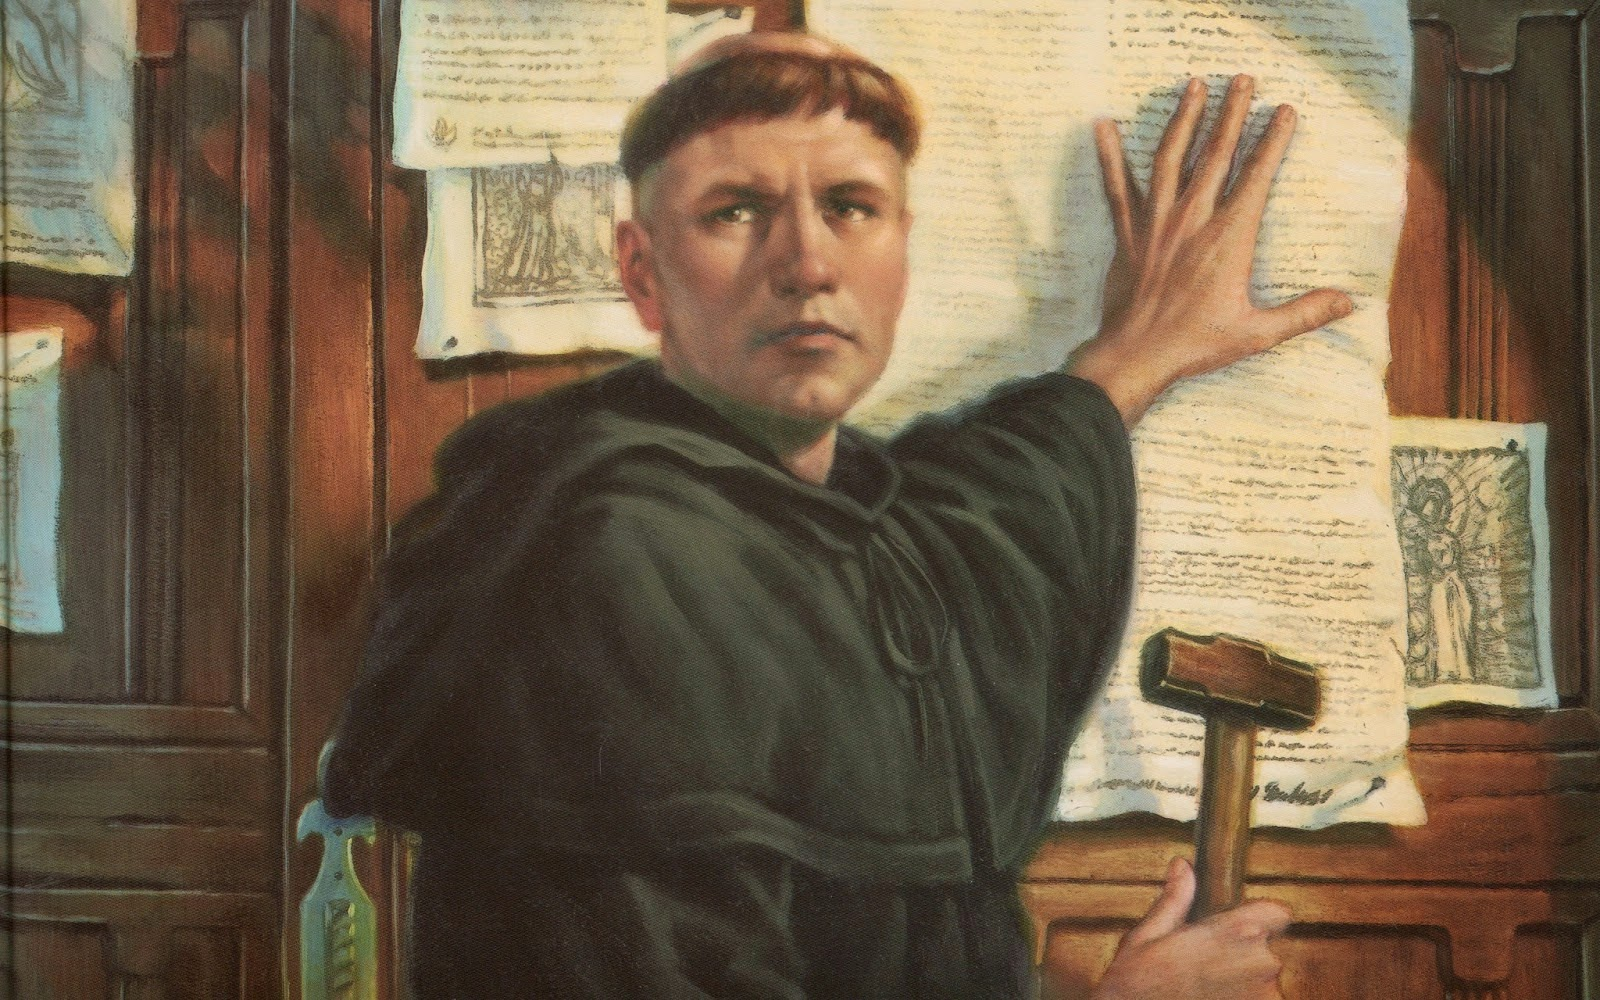 religious ideals protestant reformation vs counter reformation The counter-reformation is a protestant movement emphatically against the catholic church the easy way to remember this is through the simple logic that there is a catholic reformation while the protestants are counter--or against--that reformation.